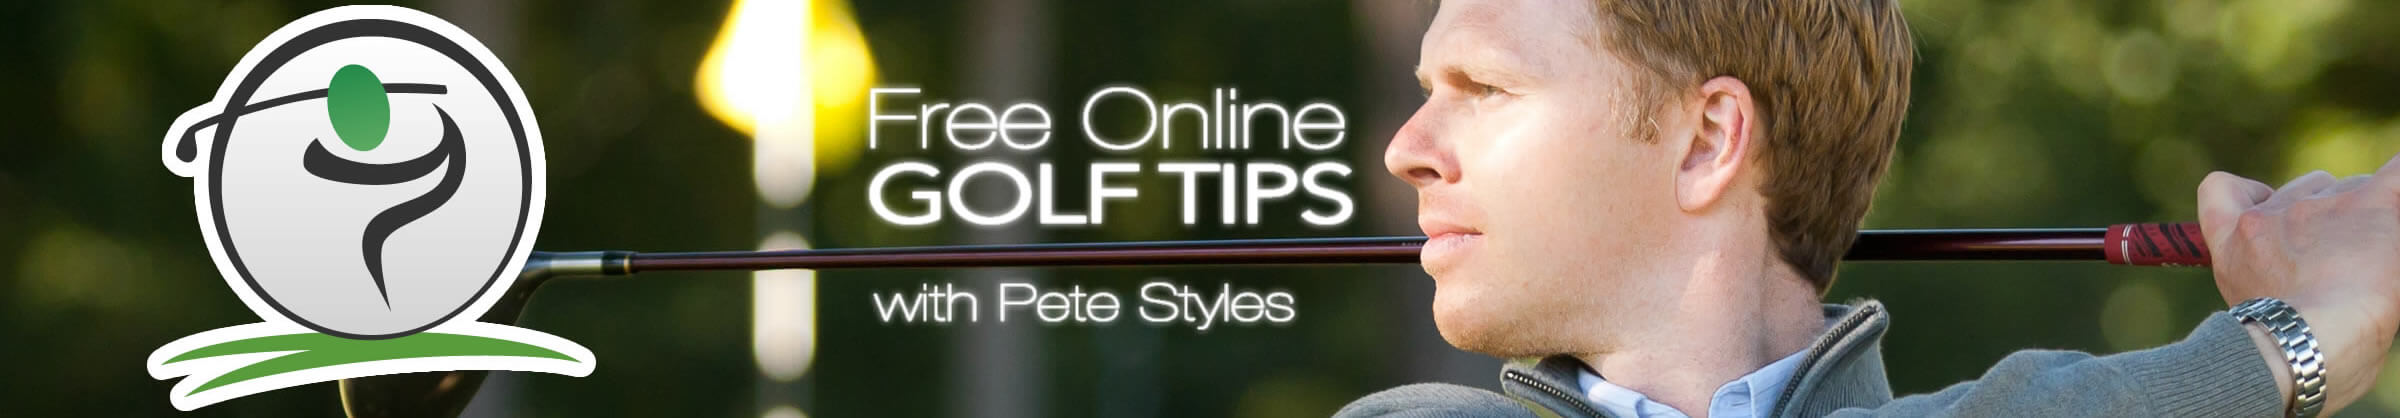 cffb1260f745 Top 10 Golf Tips For Beginners